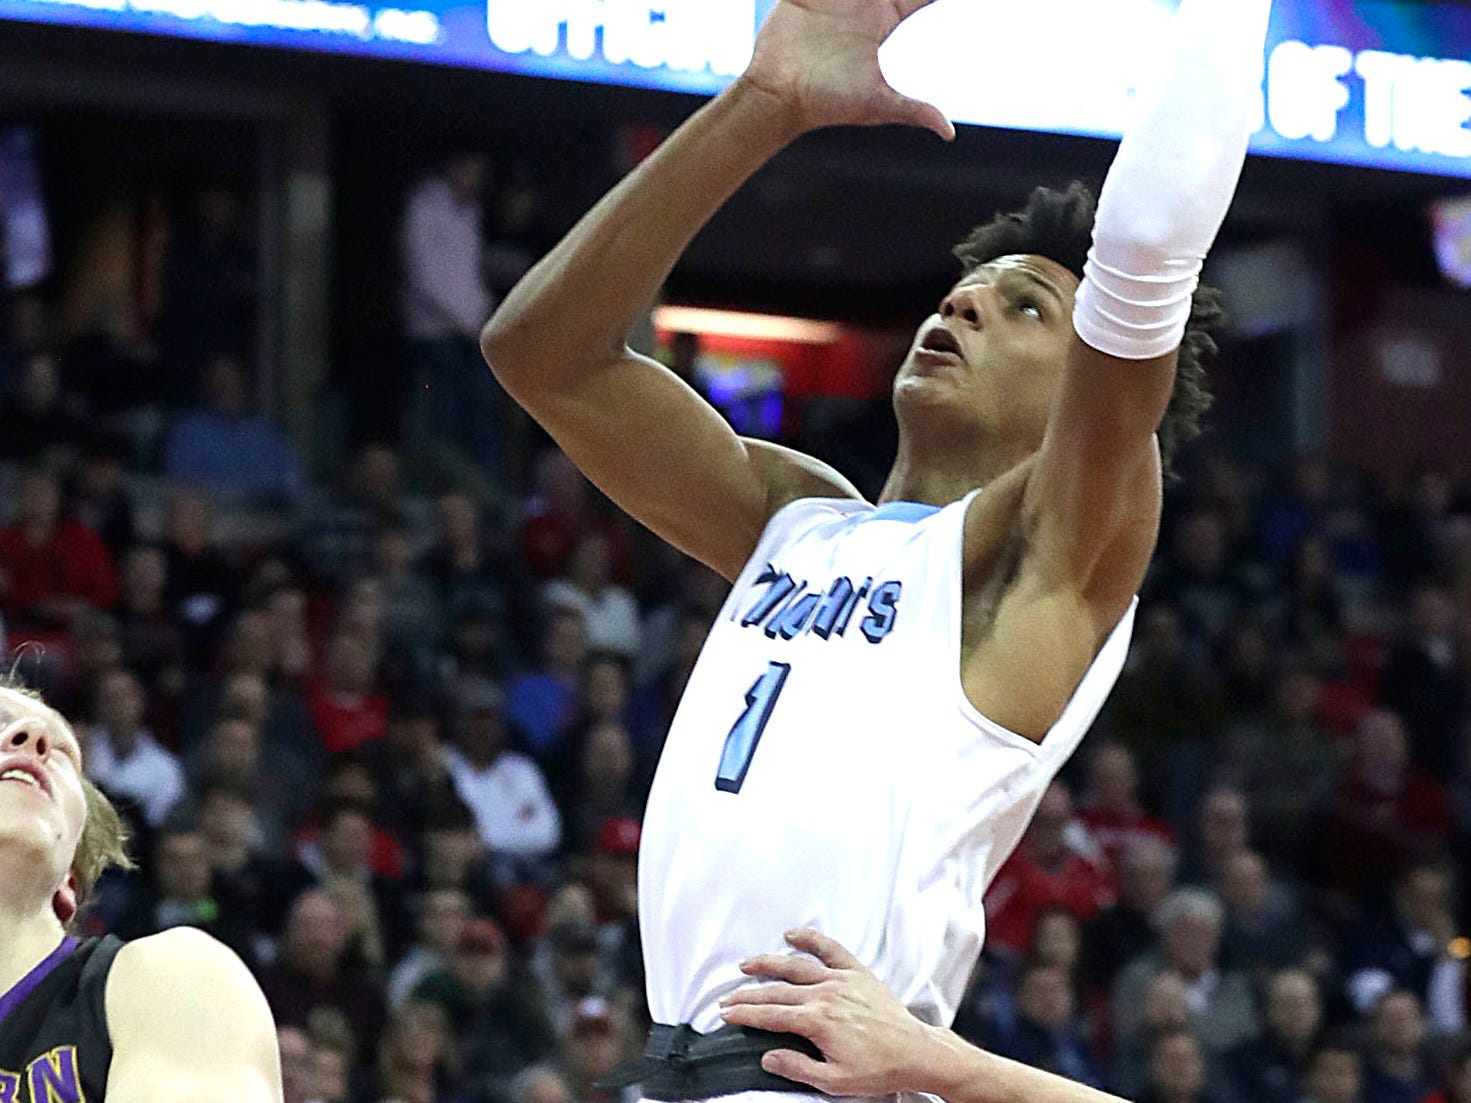 Nicolet's Jalen Johnson creates space at the basket and scores Friday afternoon.